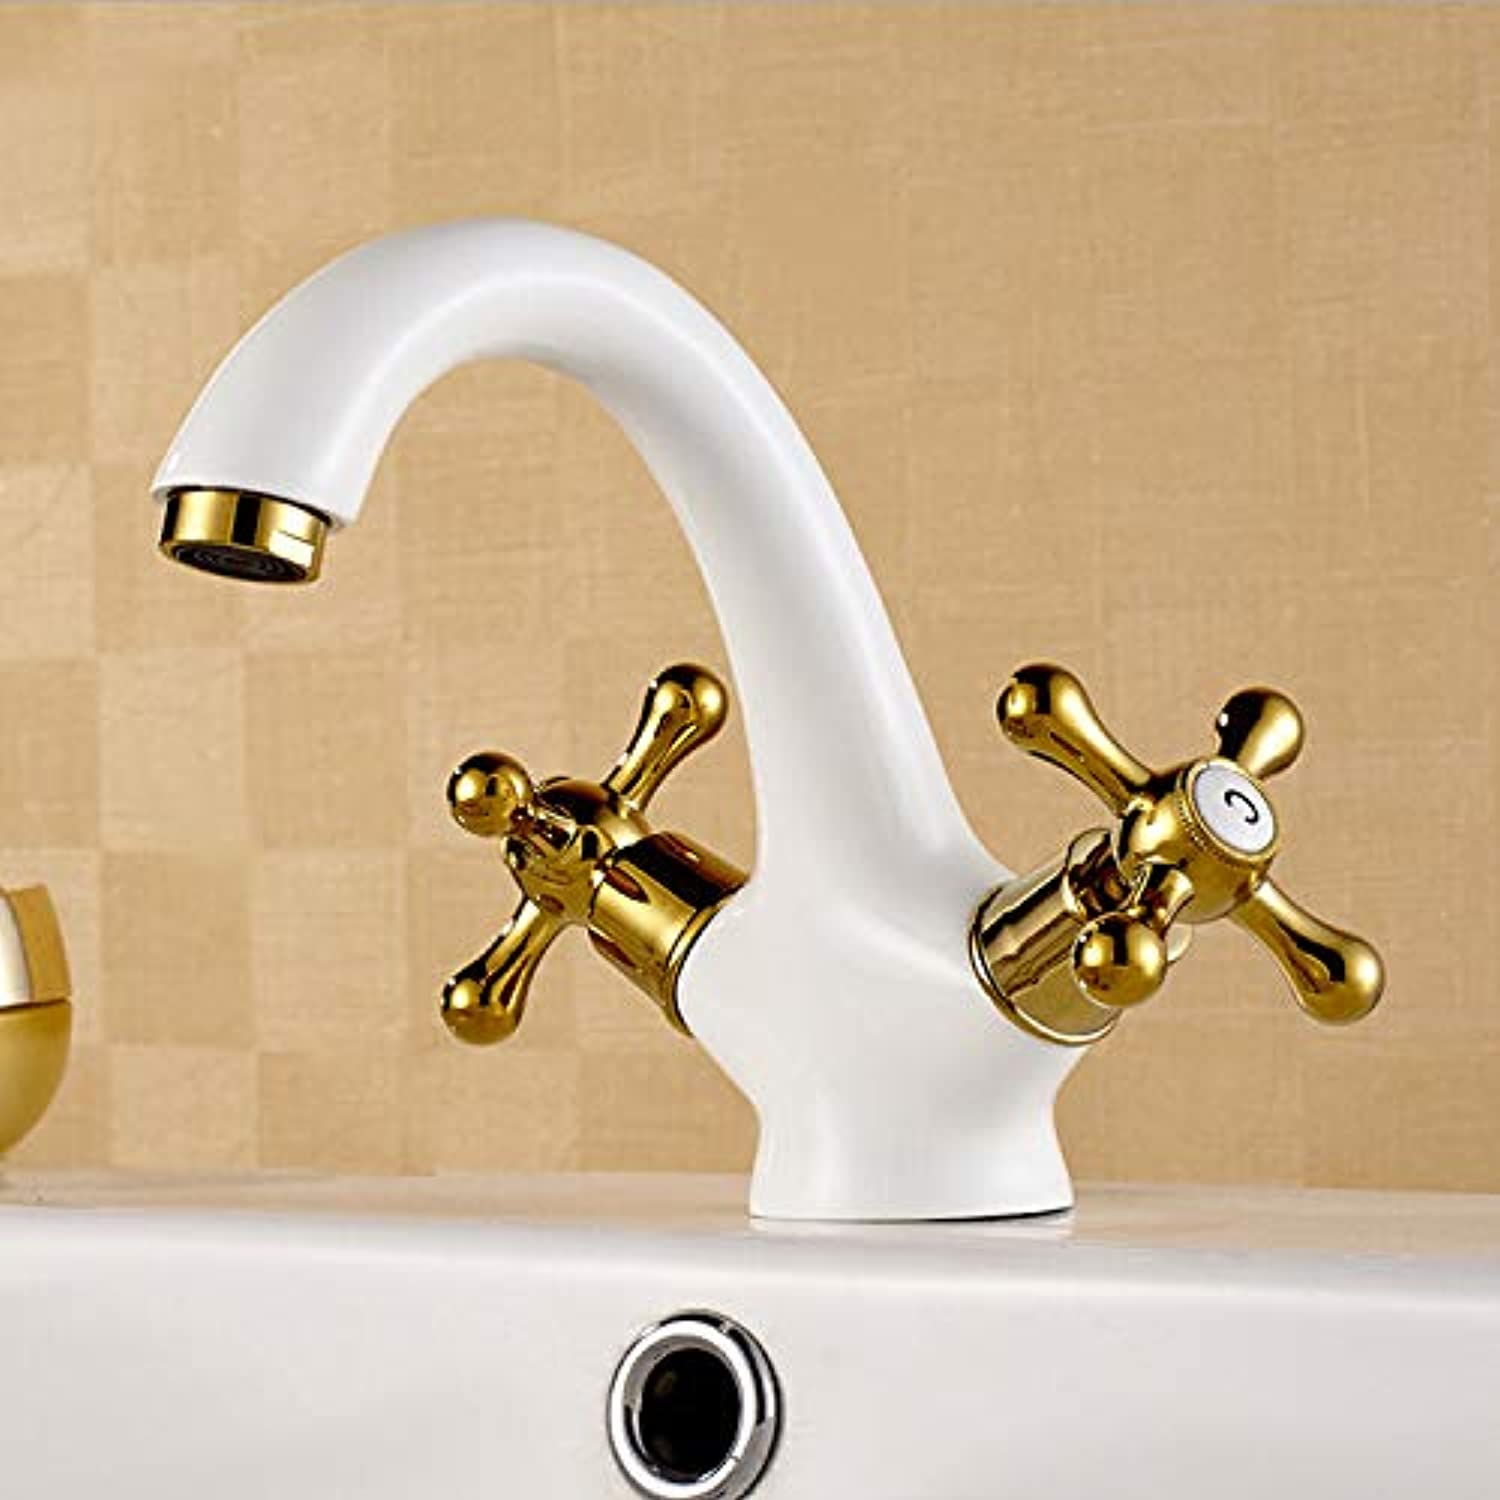 redOOY Basin hot and cold water faucet all copper white double-sided basin hot and cold water faucet sitting single hole white gold basin washbasin